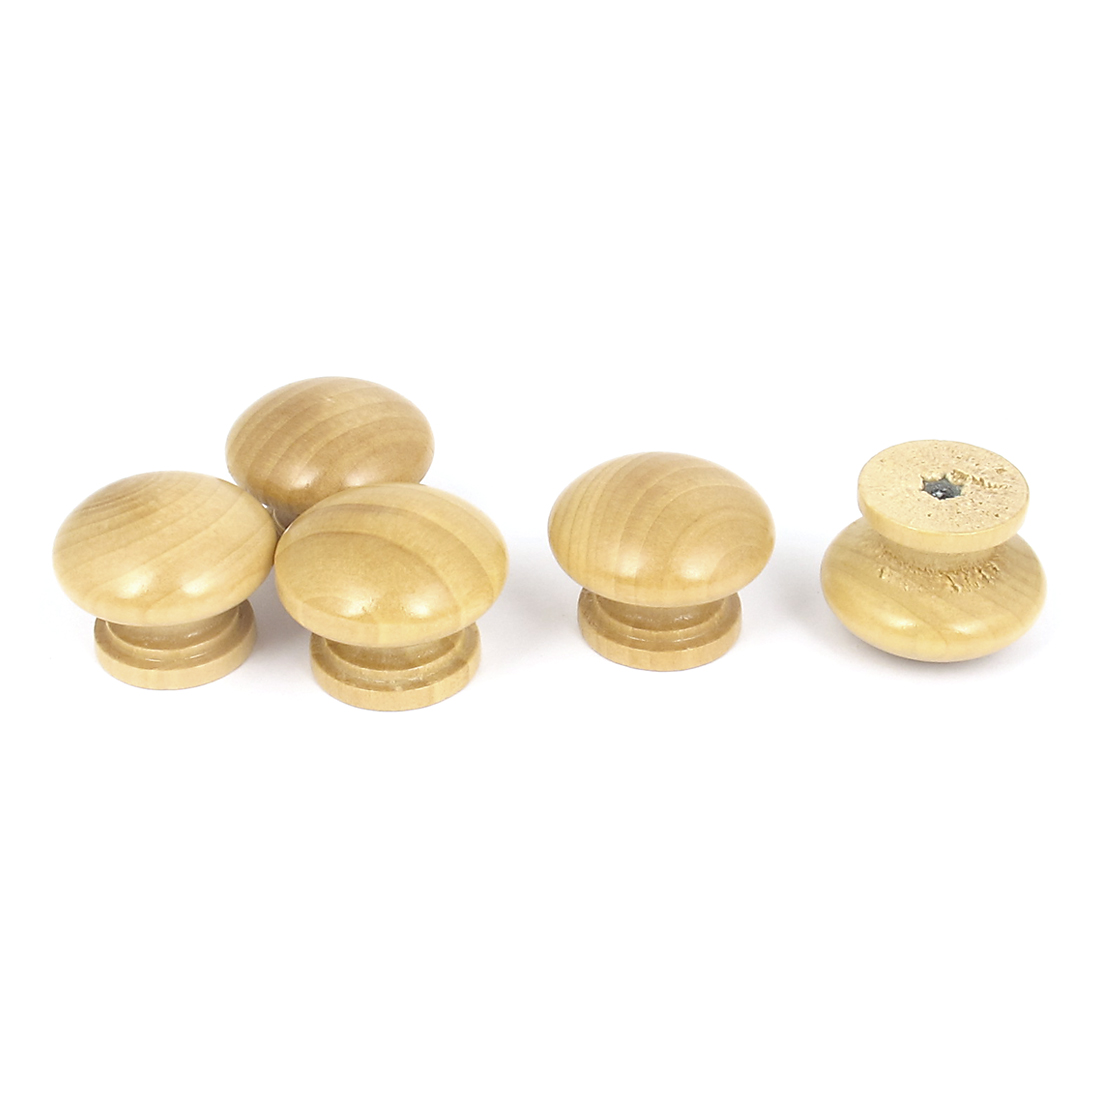 Cabinet Kitchen Cupboard Drawer Round Wooden Pull Knob Handle Beige 5Pcs